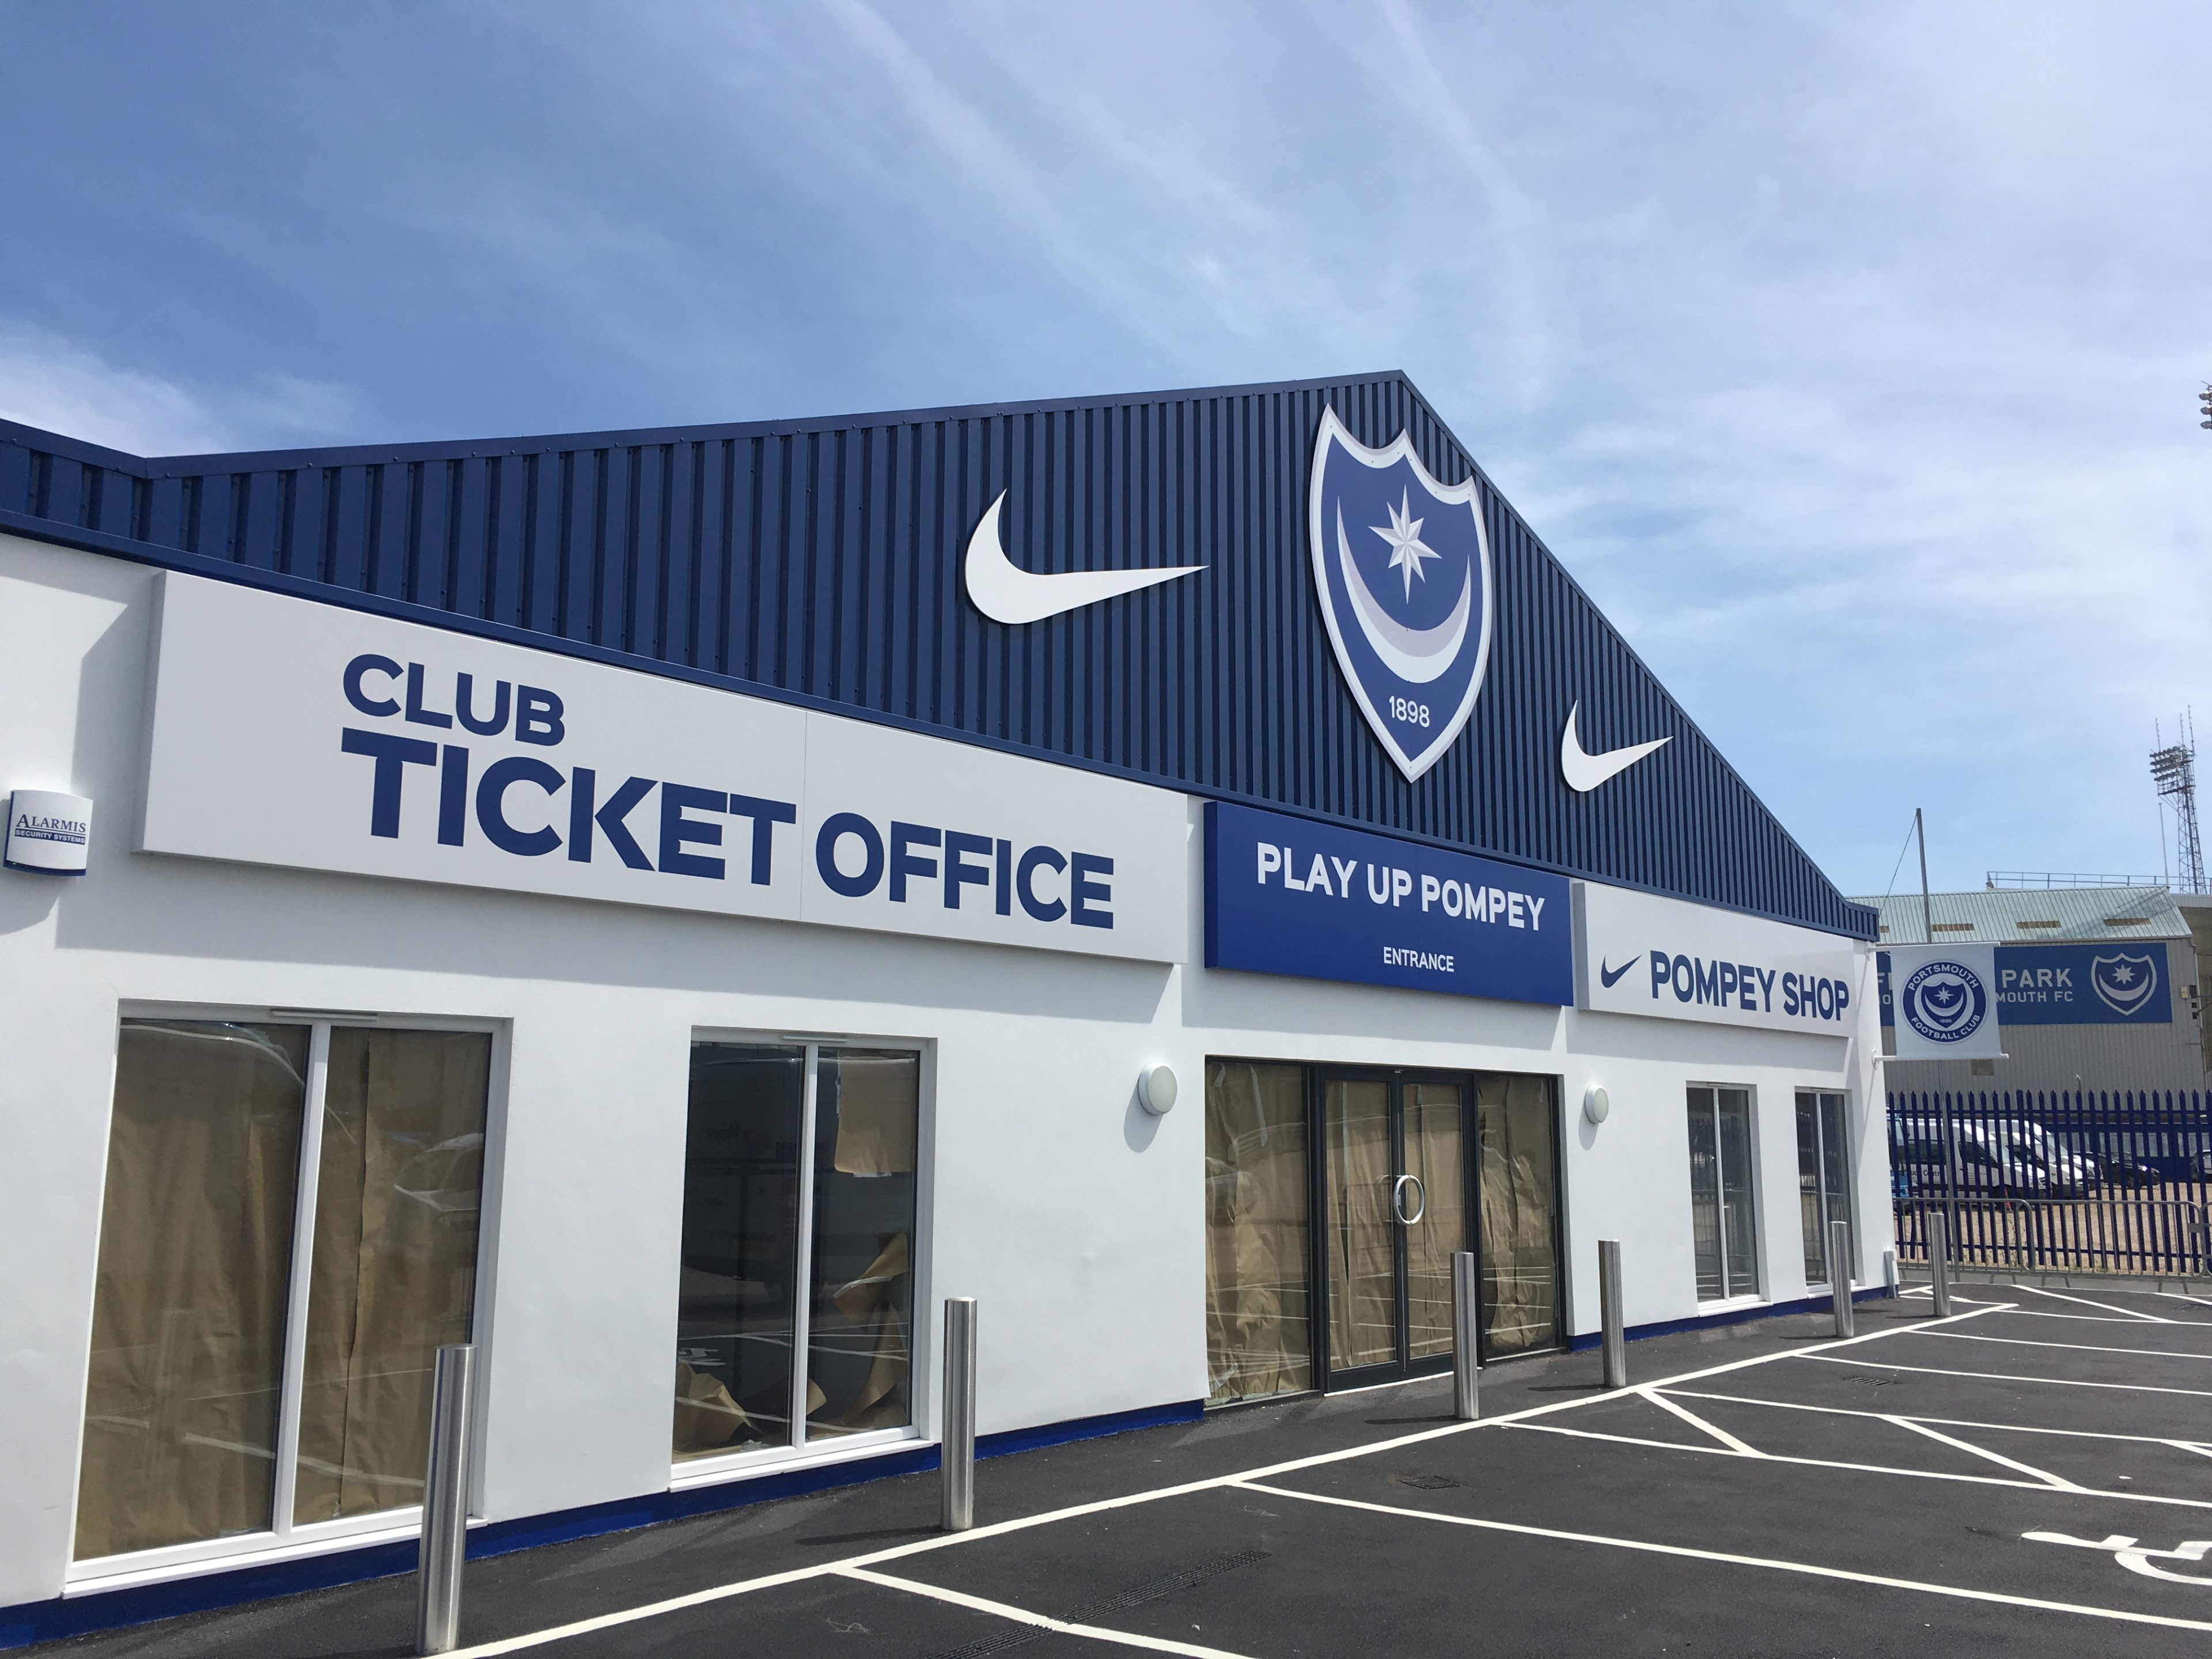 Portsmouth Football club shop and ticket office signage